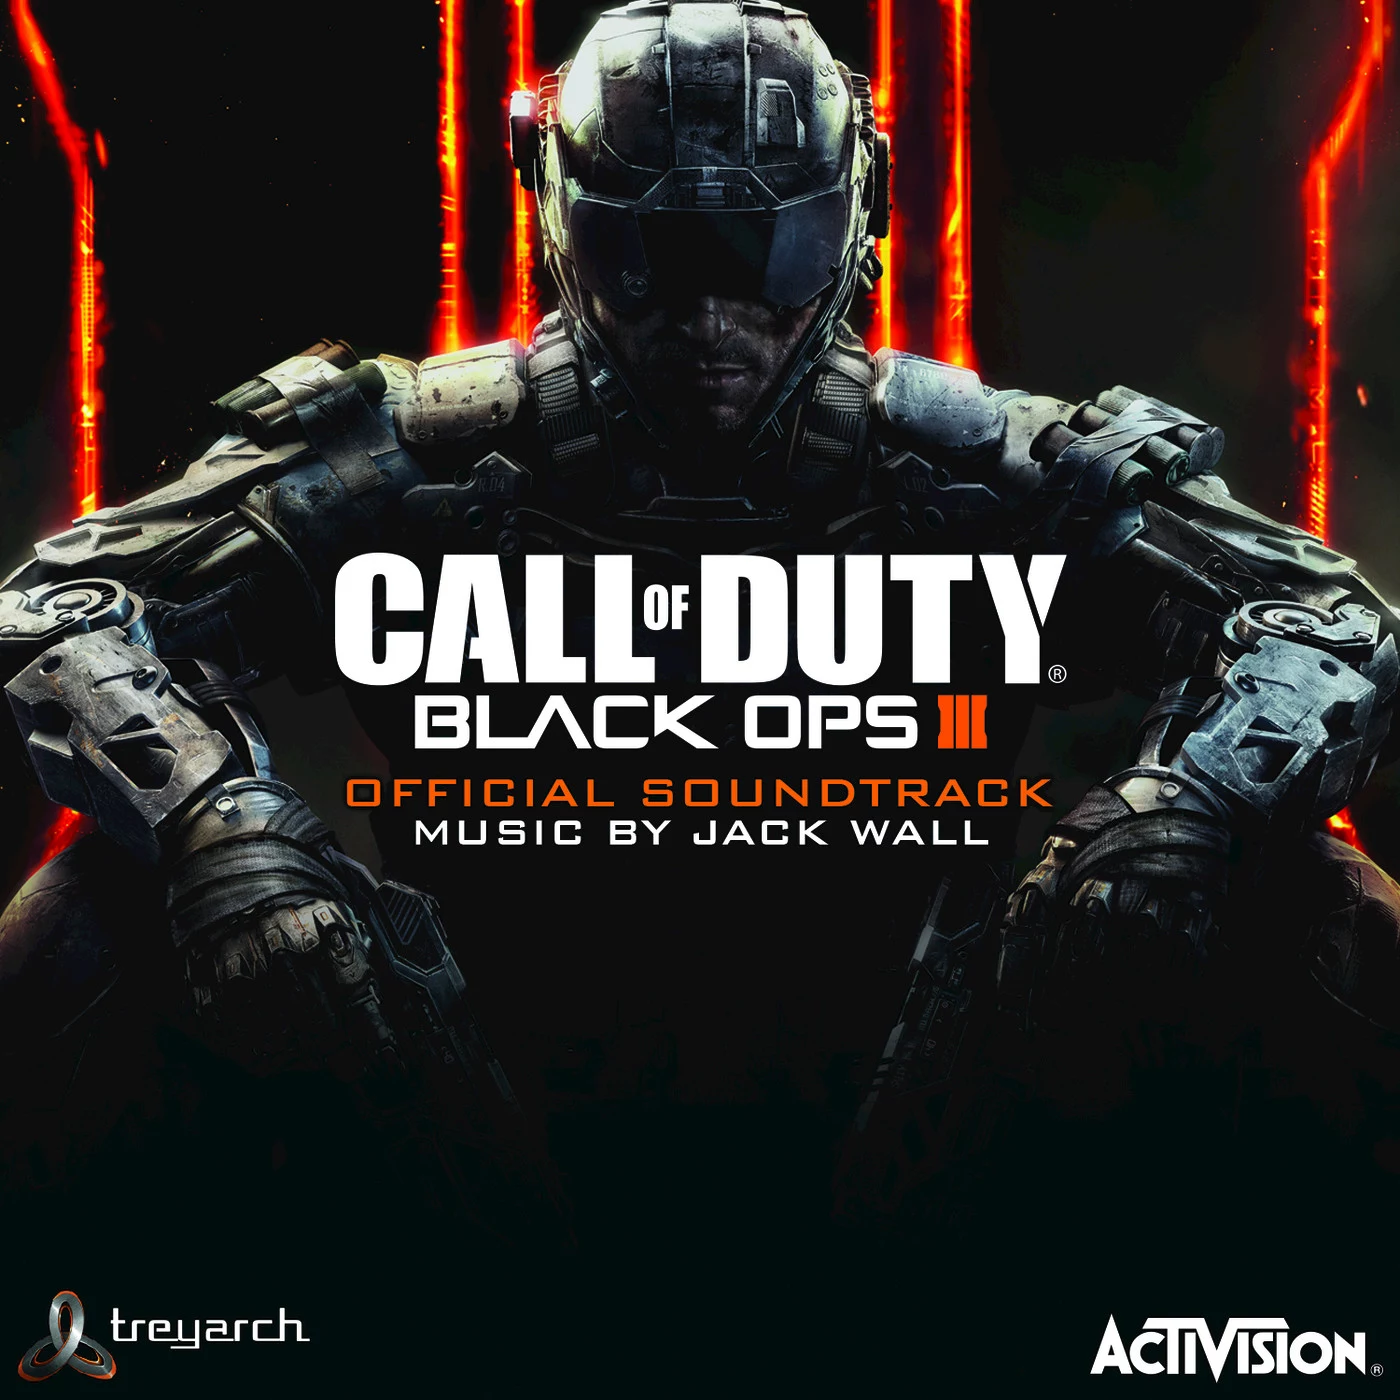 call of duty black ops 3 pc torrent